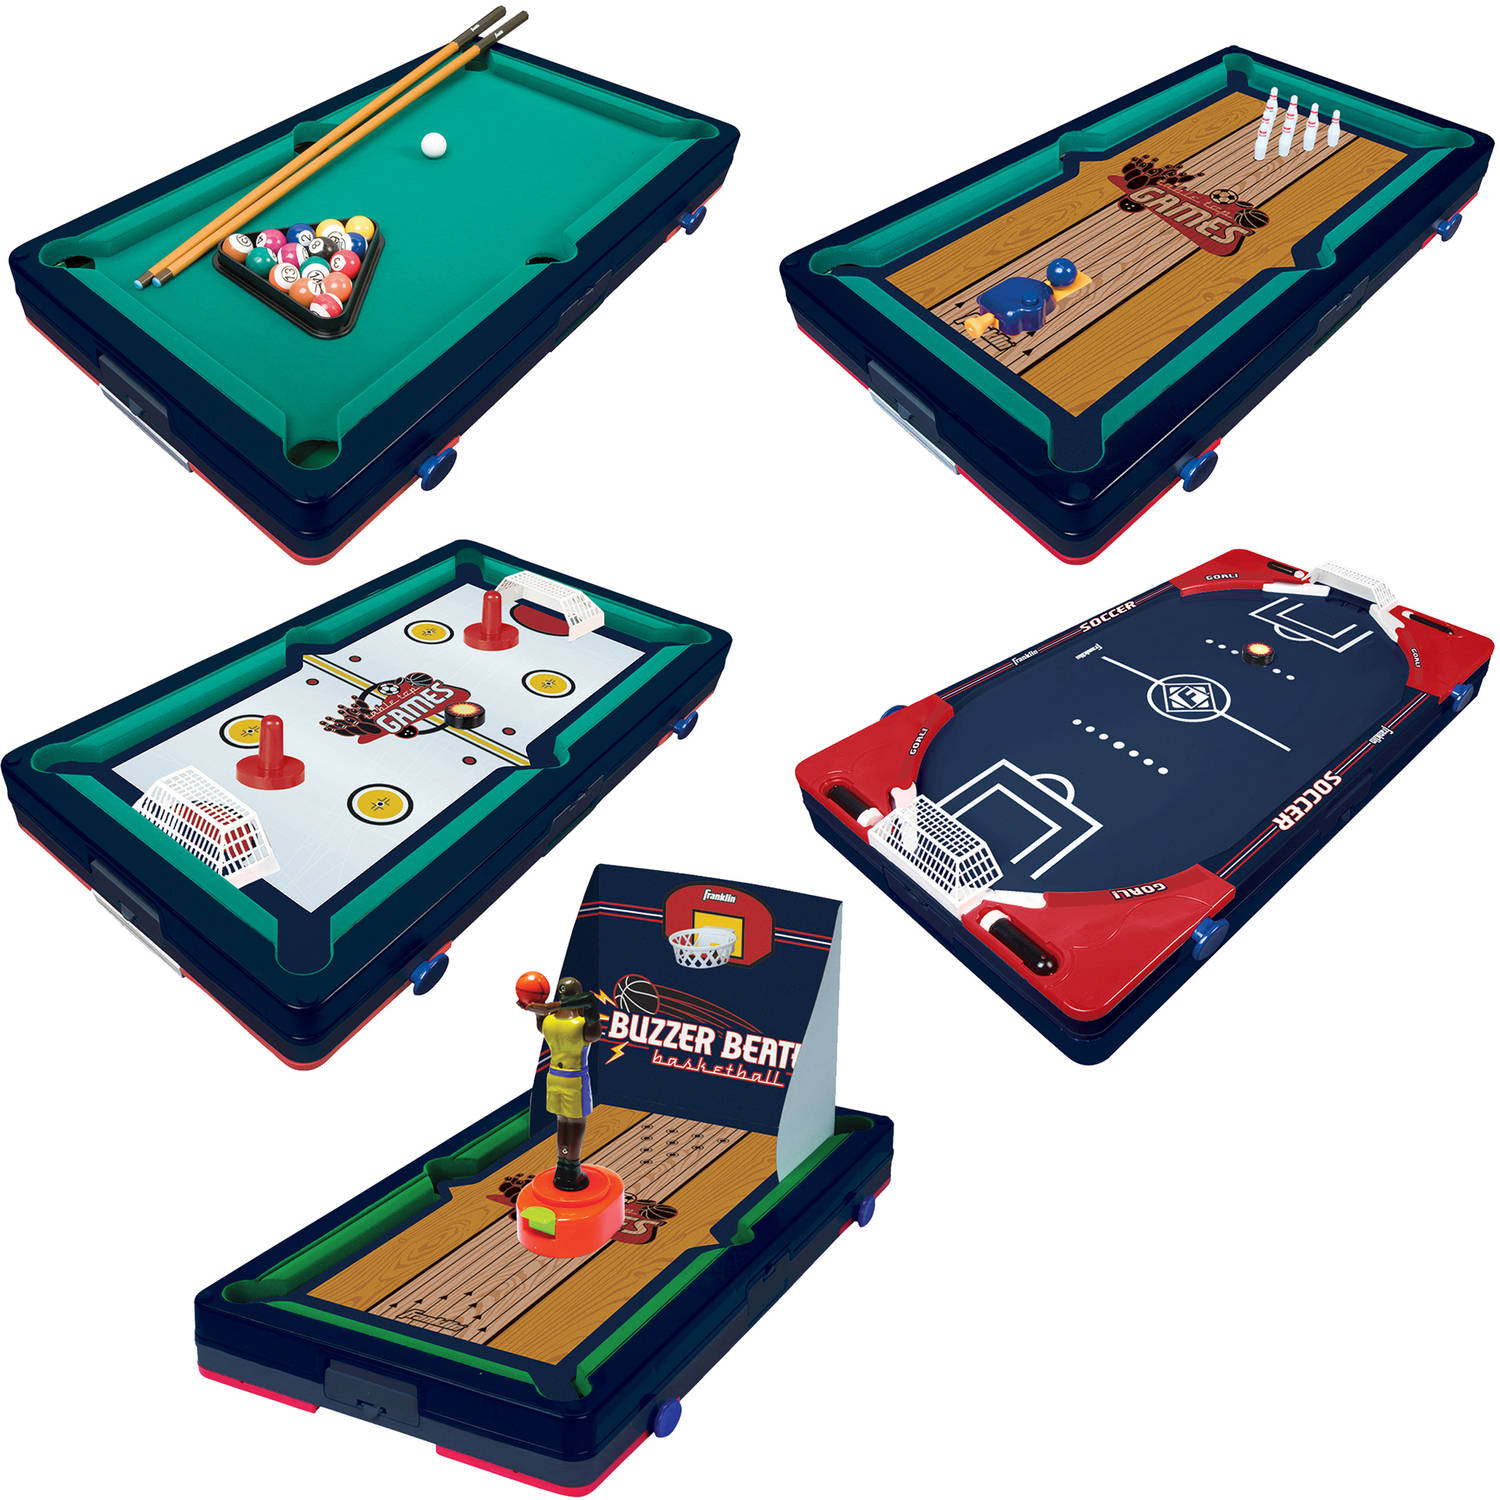 "Franklin Sports 5-In-1 Sports Center Table Top Game, 18.5"" x 10.5"" x 3"""